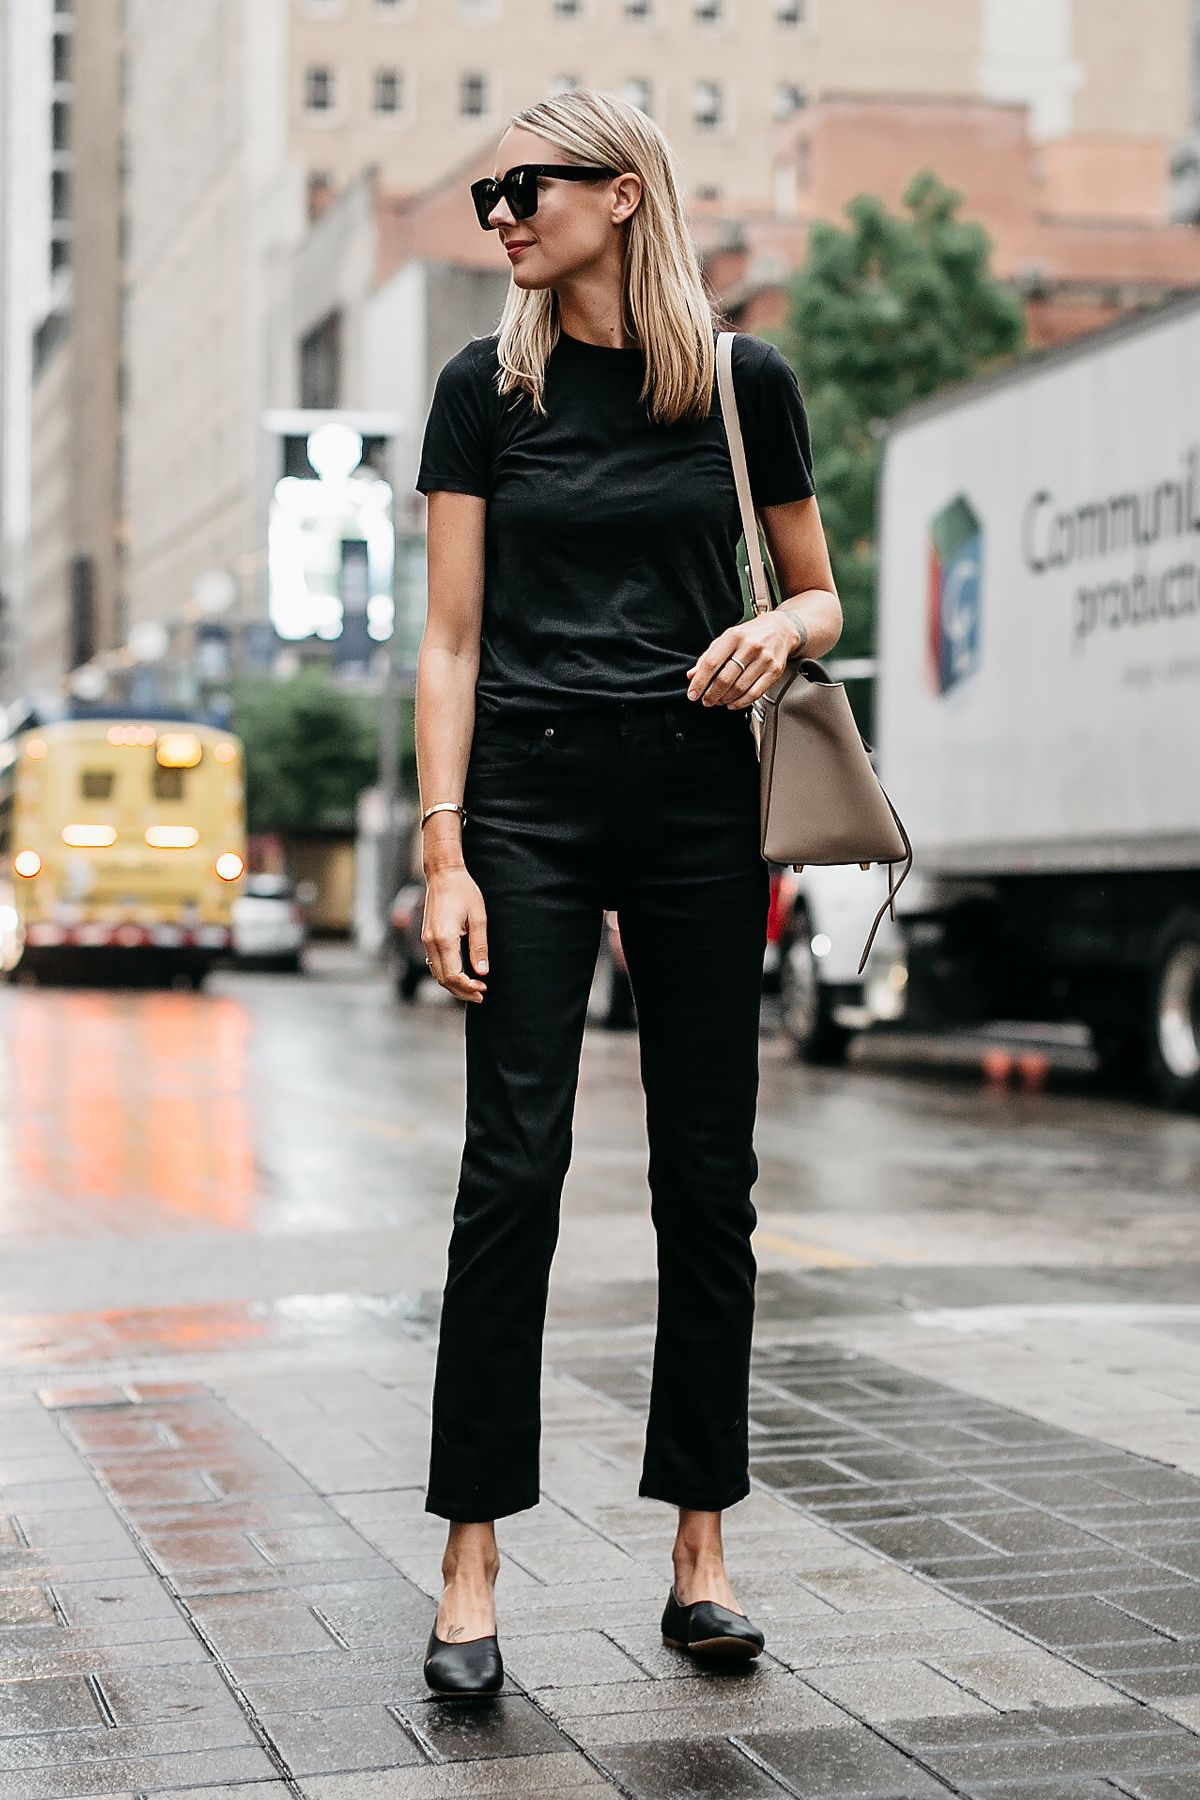 3977e03ad0c4 Blonde Woman Wearing Everlane Black Tshirt Everlane Black Boyfriend Jeans  Everlane Black Day Glove Flats Fashion Jackson Dallas Blogger Fashion  Blogger ...